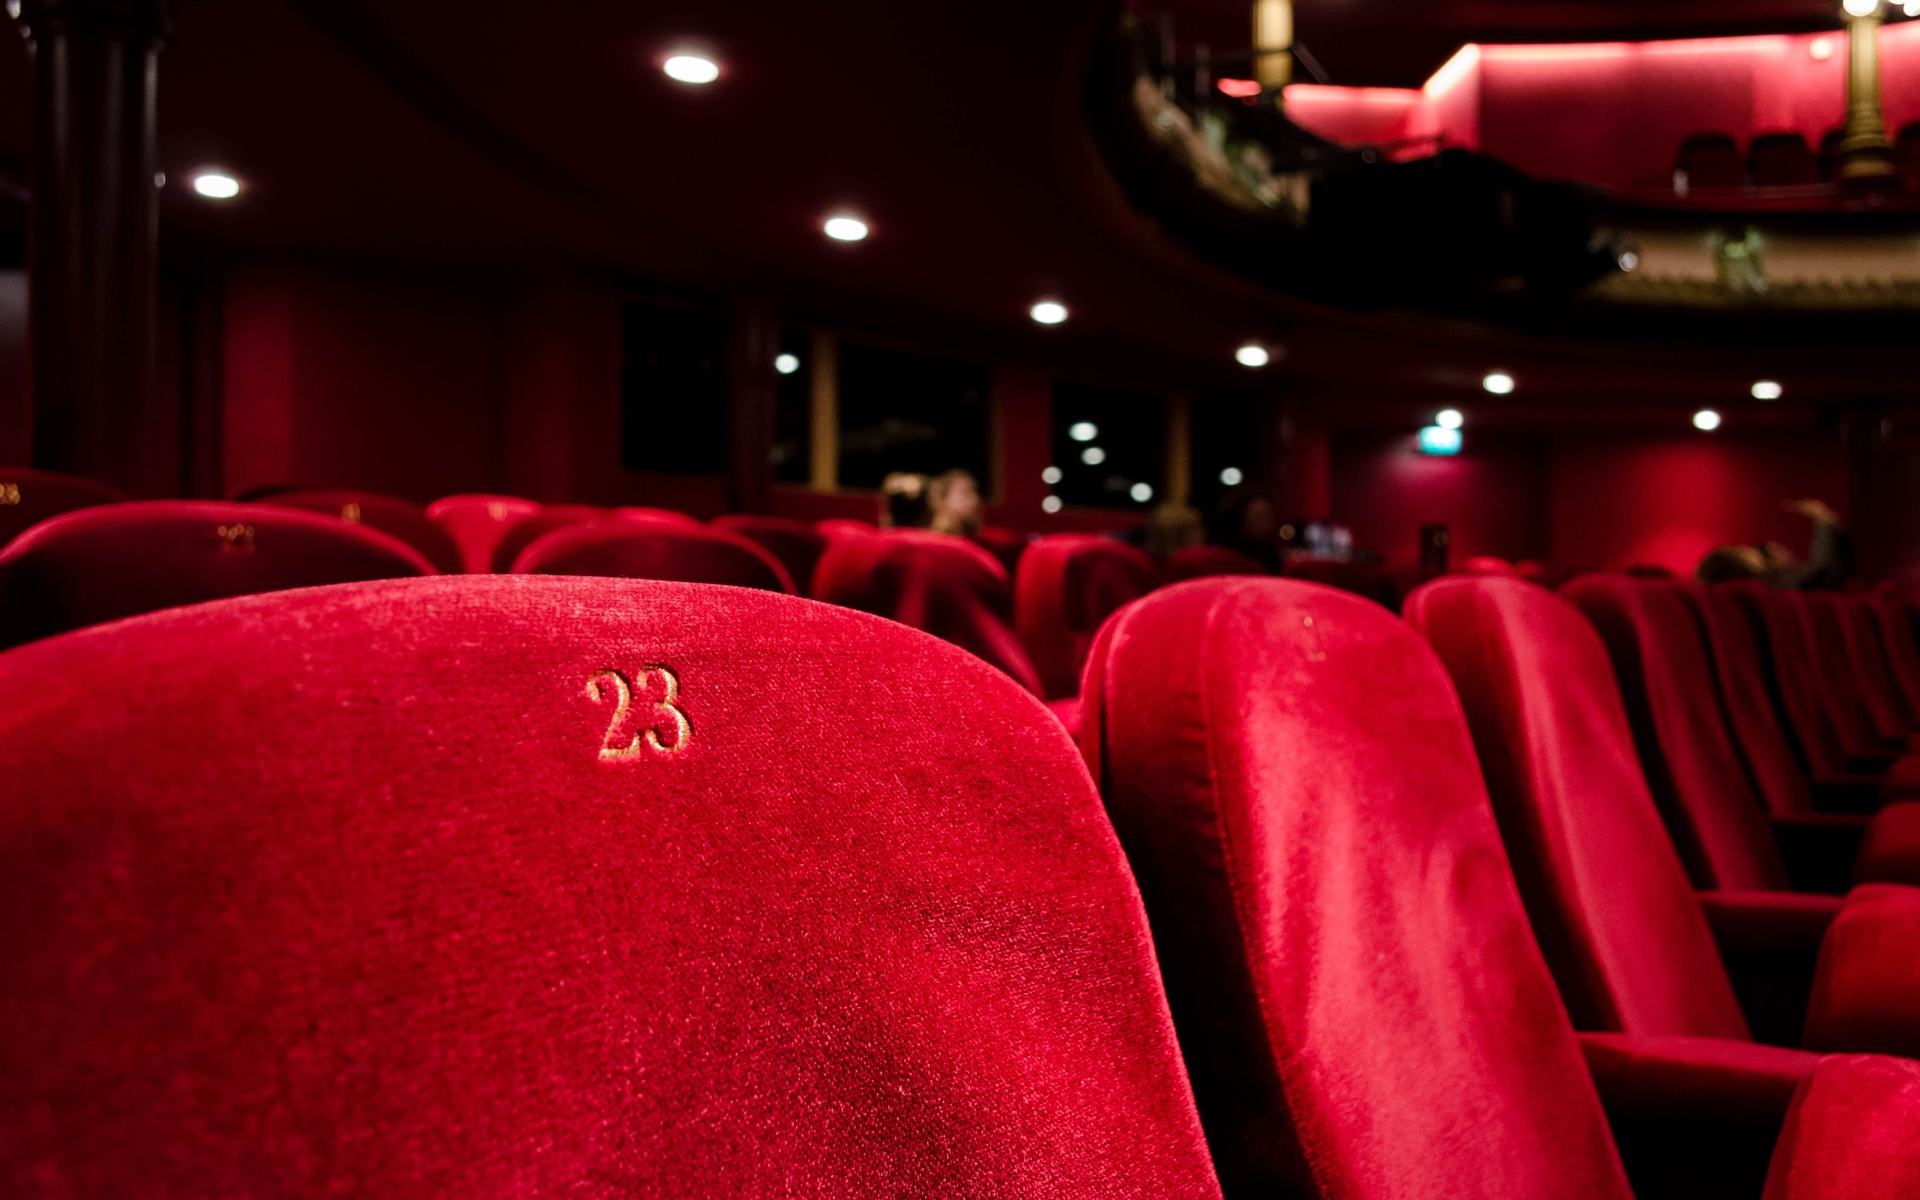 Media and entertainment industry companies like theaters must consider unique issues as they work to apply ASC 606.